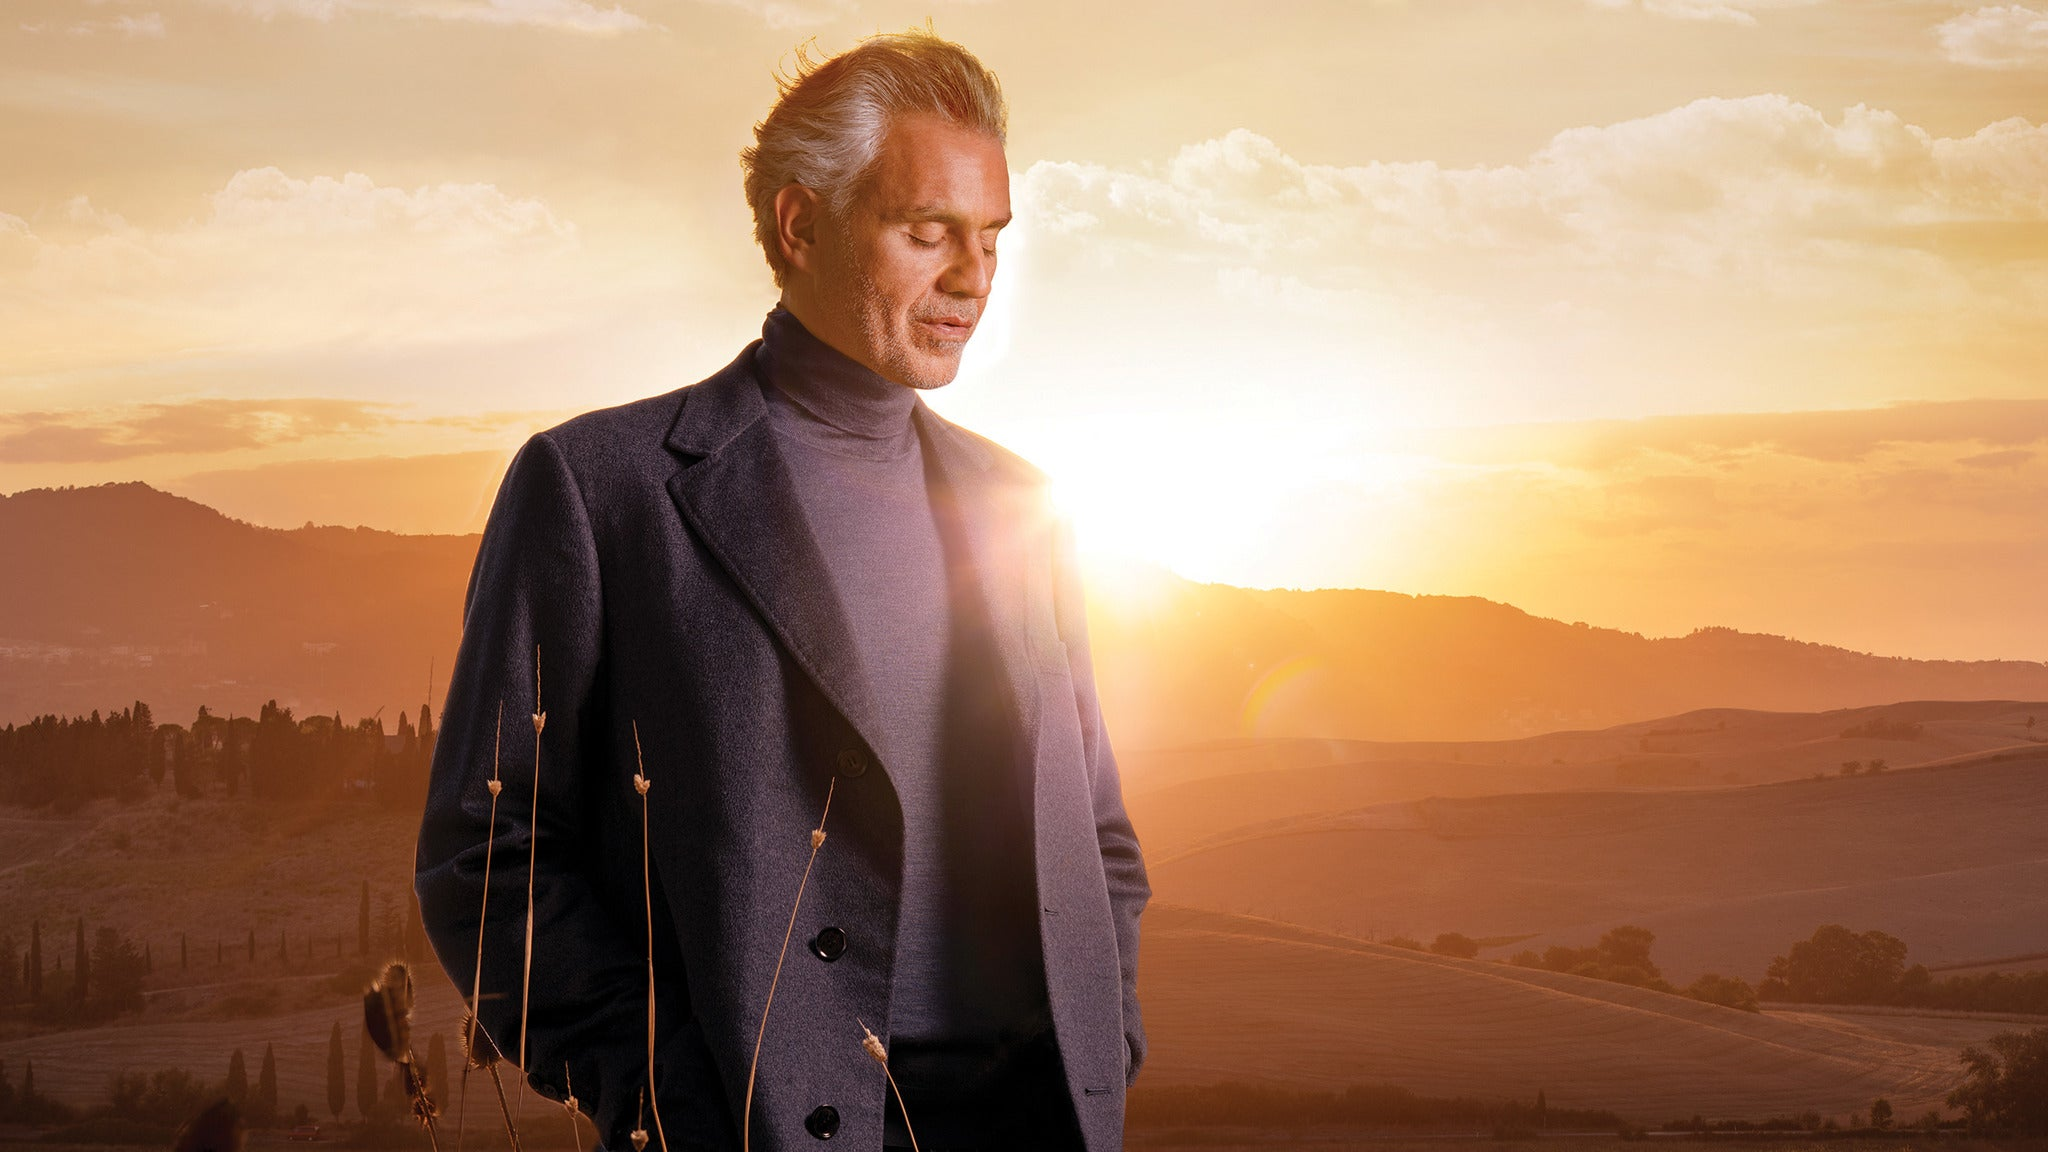 Andrea Bocelli presale password for early tickets in Charlotte